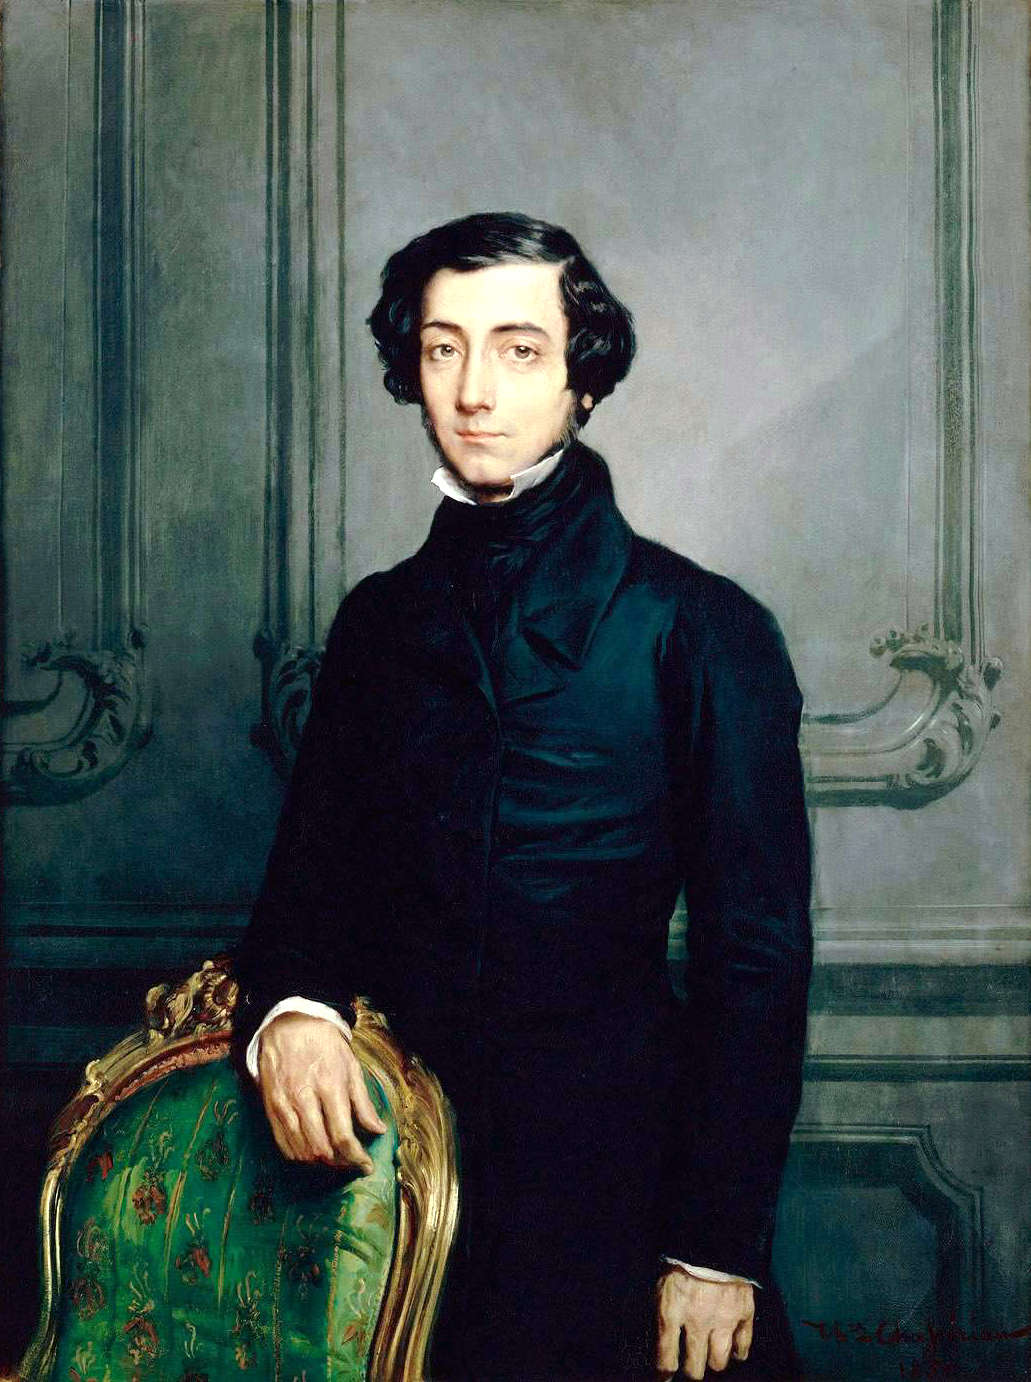 Citations de Tocqueville